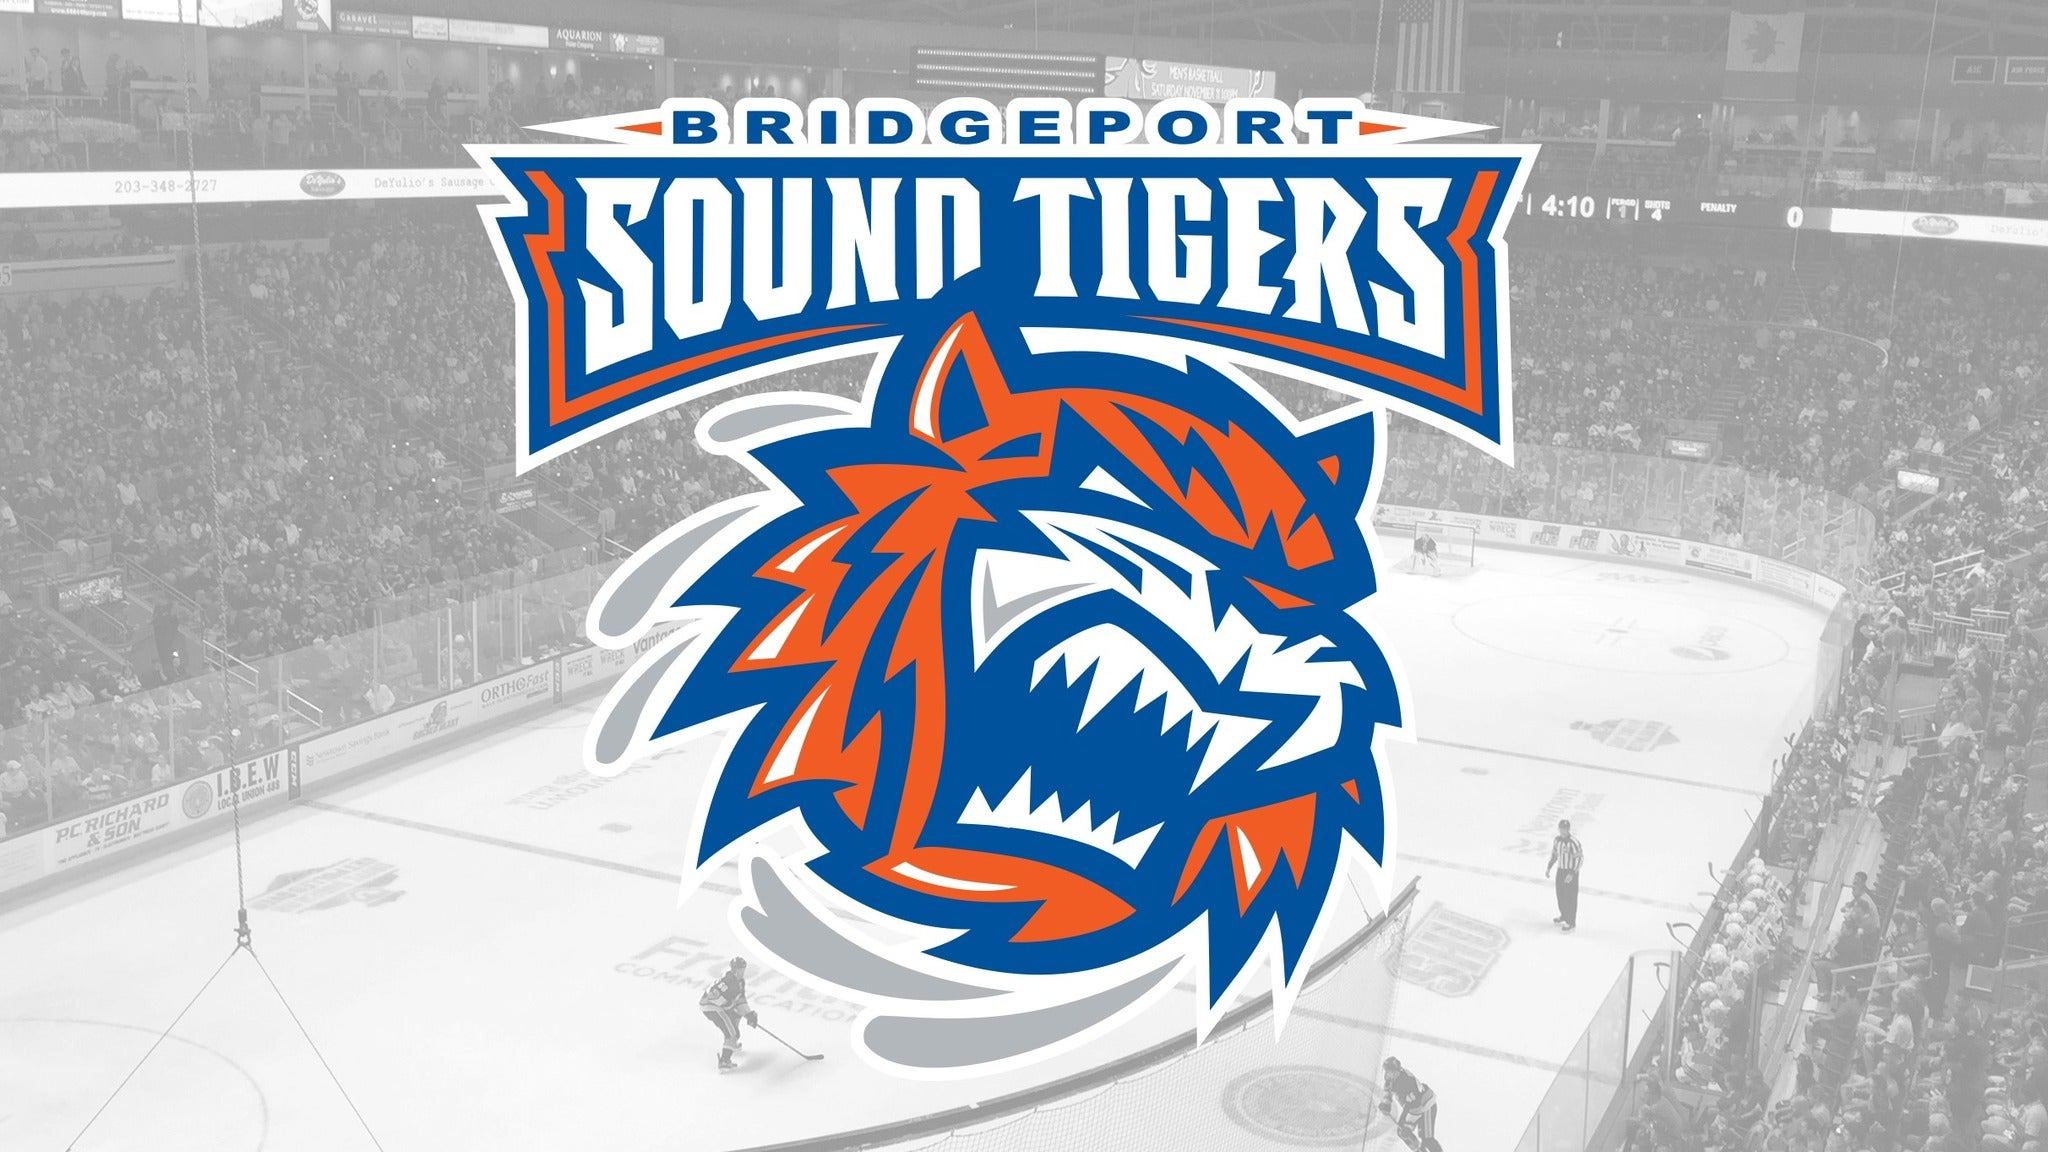 Bridgeport Sound Tigers vs. Belleville Senators